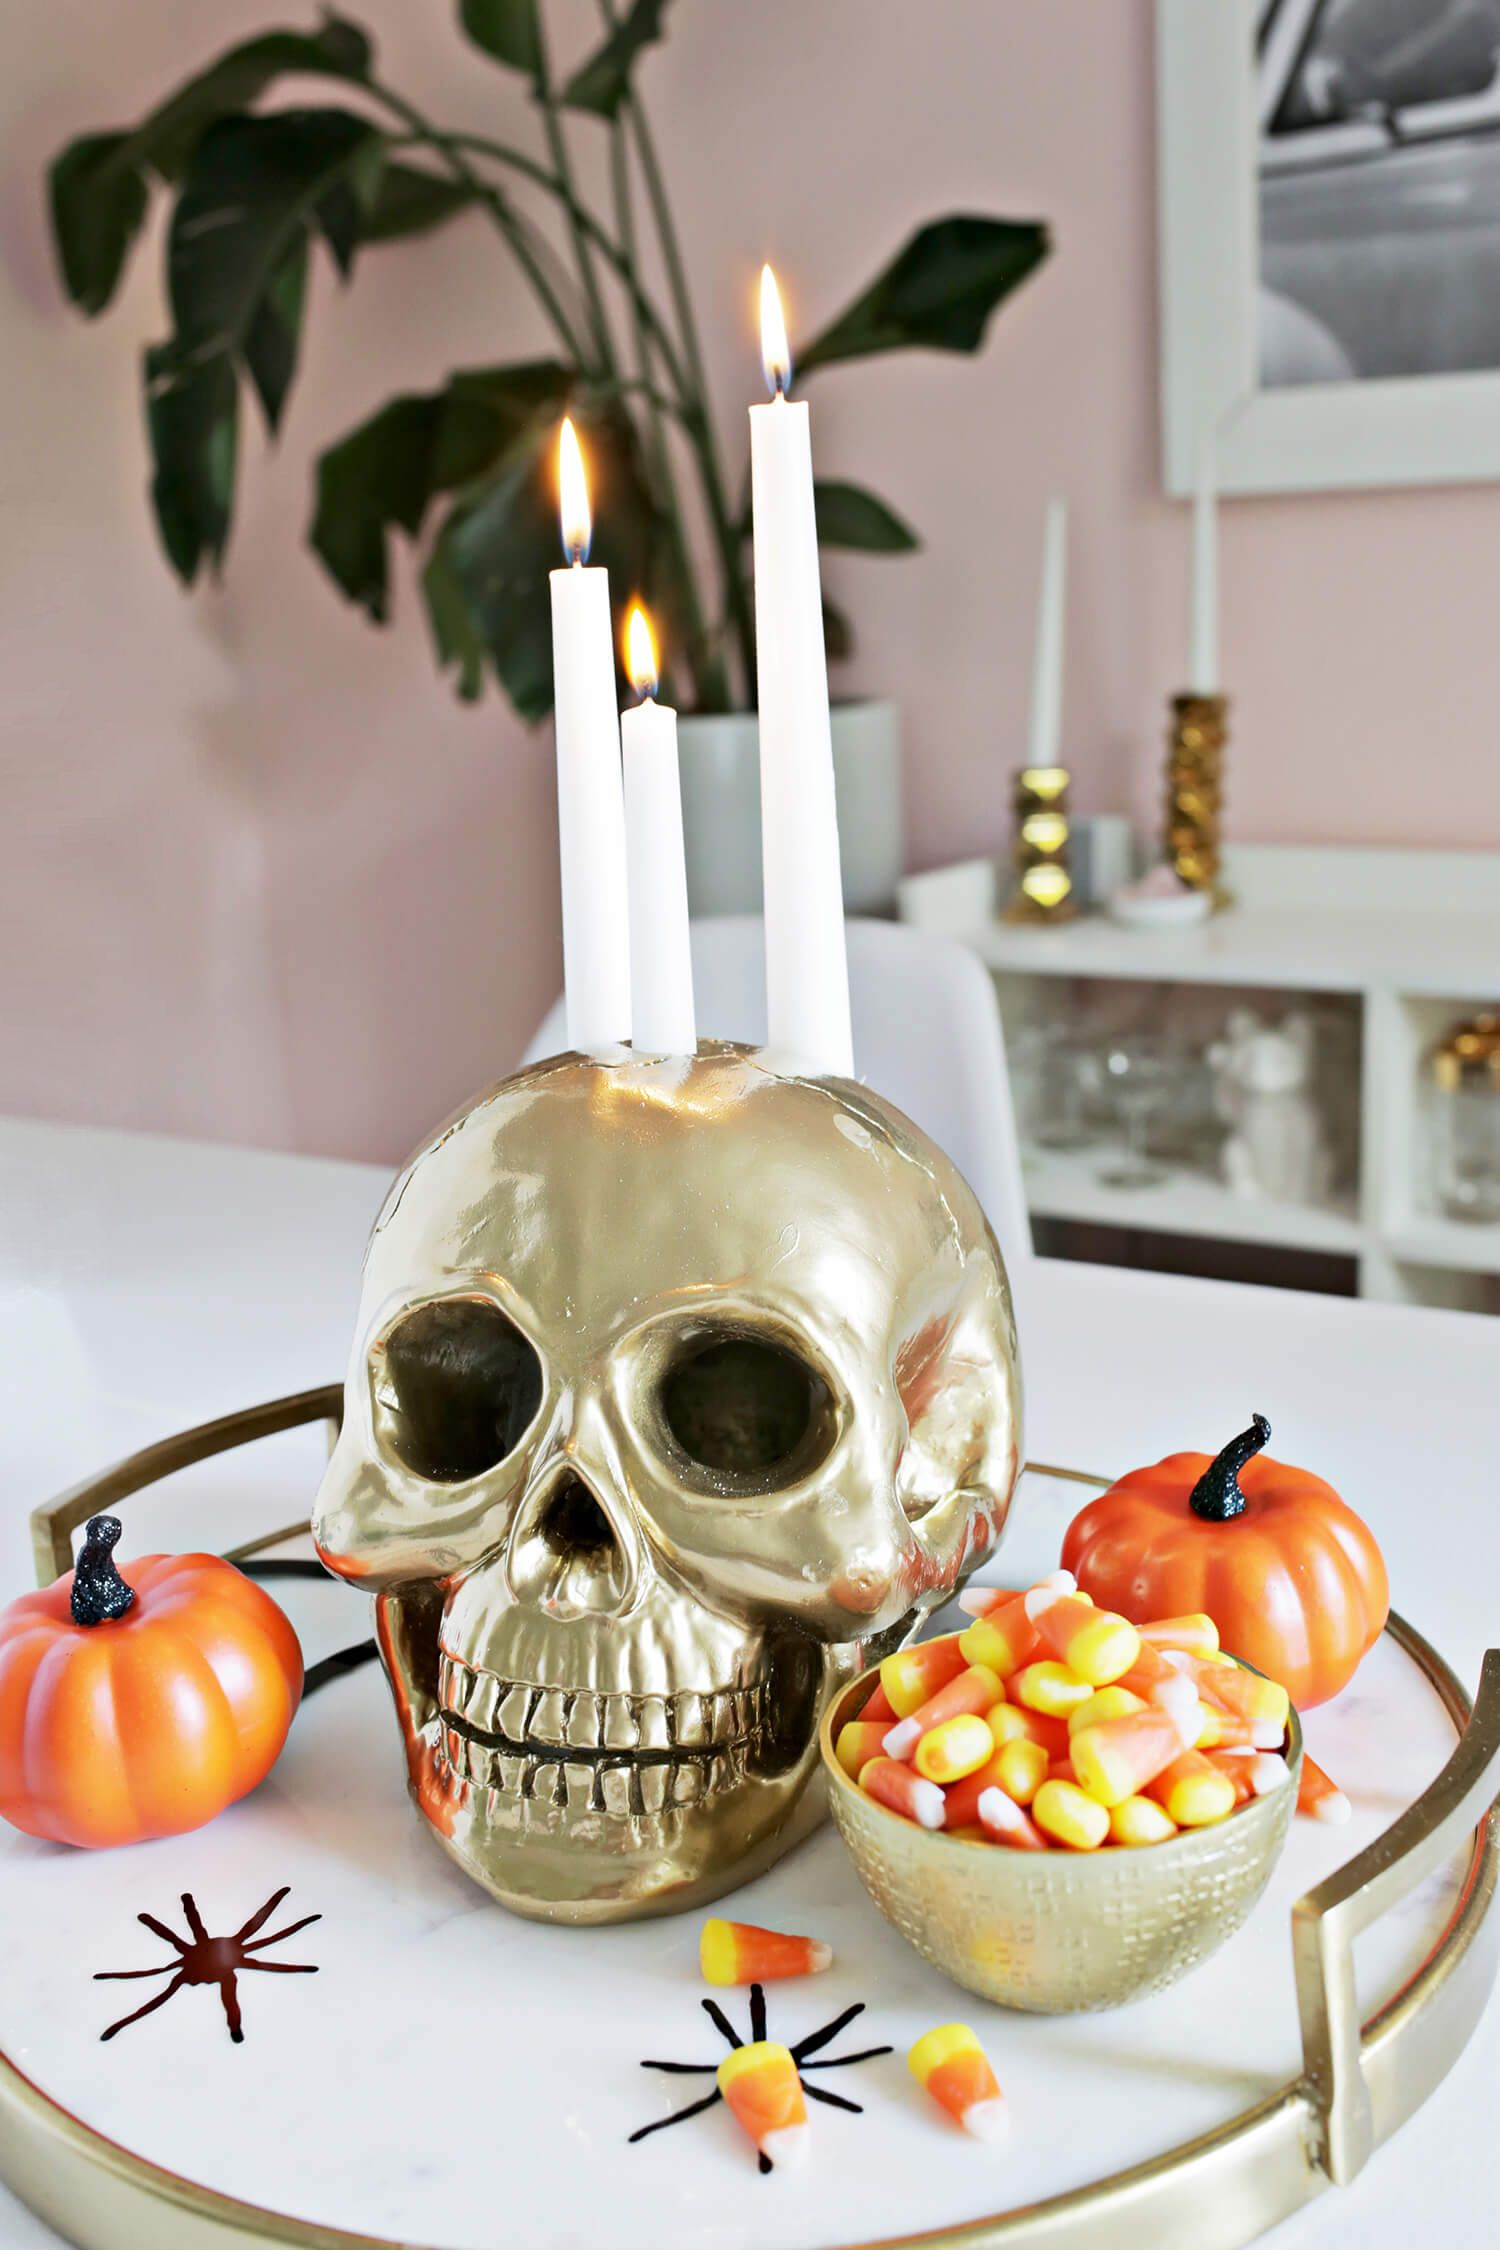 36 Dollar store DIY Halloween decorations for 2019, scary Halloween home decorations, dollar store Halloween decorations, cheap Halloween decorations, Halloween home decorations. These ultimate DIY Halloween decorations will blow you away. The ultimate dollar store DIY Halloween decorations that are super scary and cheap. #halloween #diy #scary #spooky #halloweendecorations #homedecor #halloweendiy #halloweenideas #2019 #2019halloween